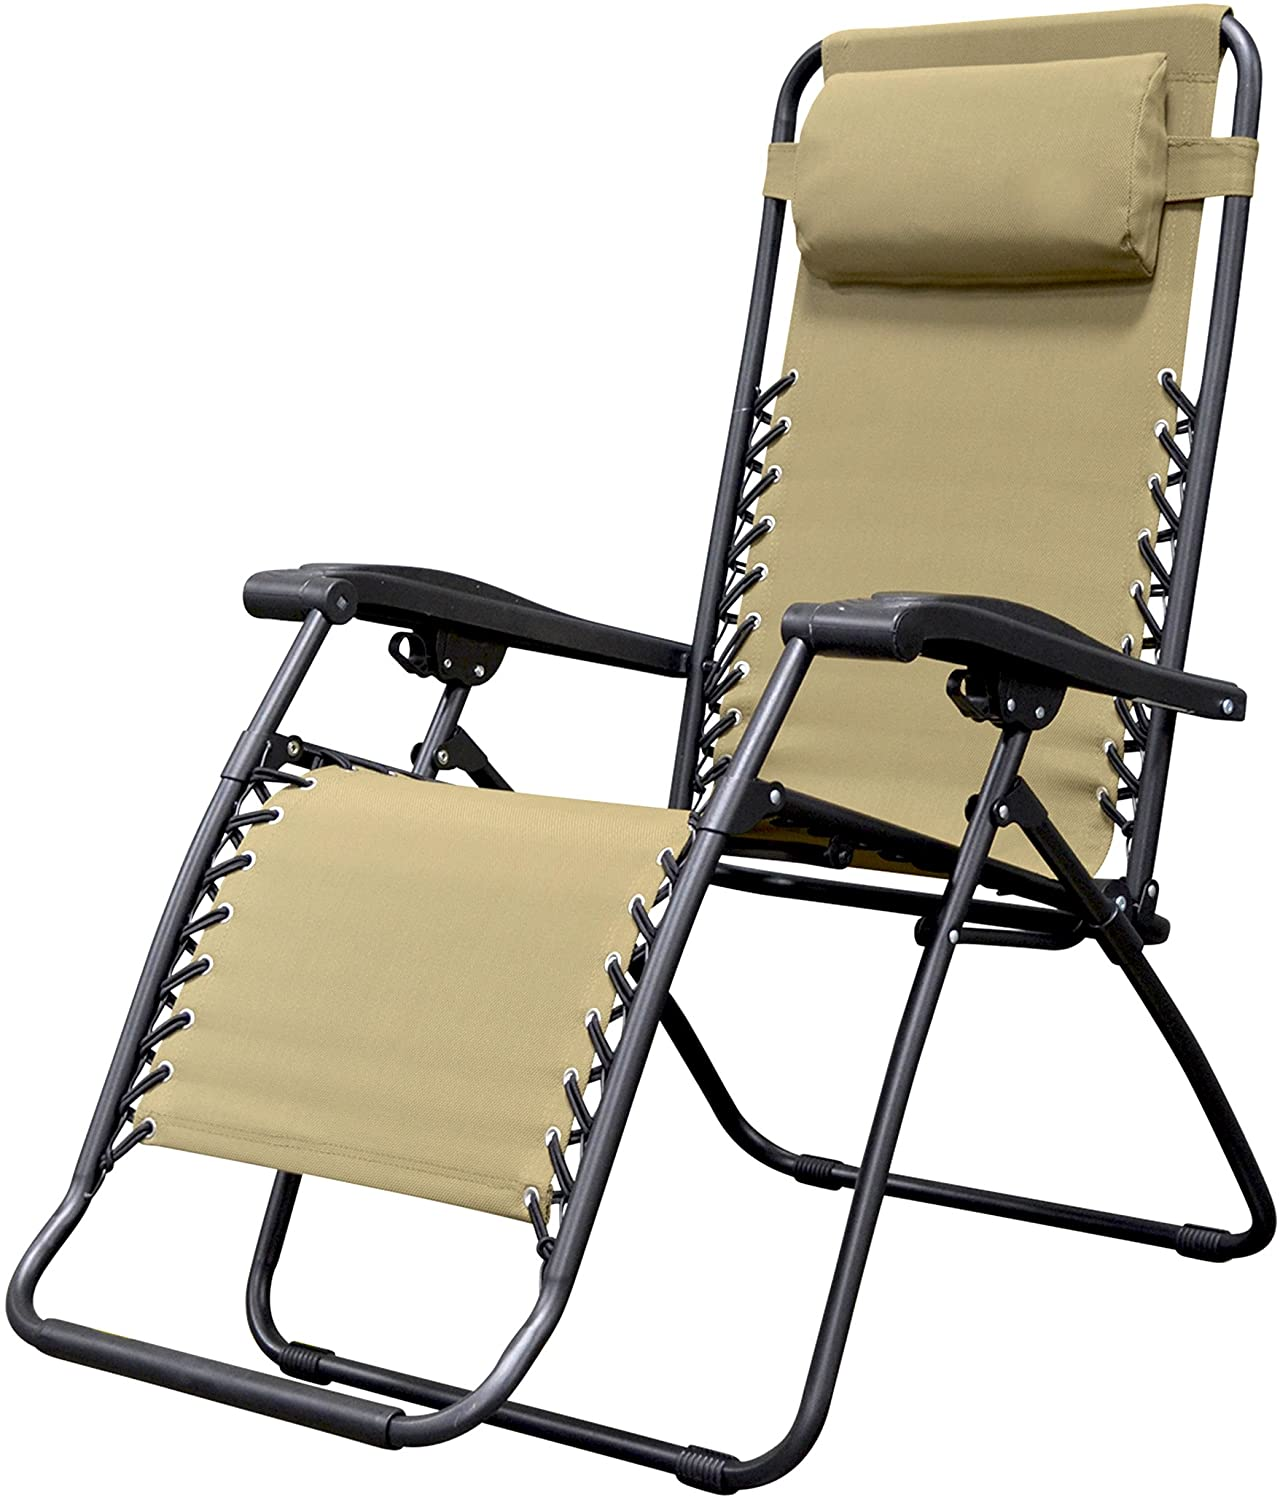 Caravan Canopy Sports Infinity Beige Zero Gravity Chair